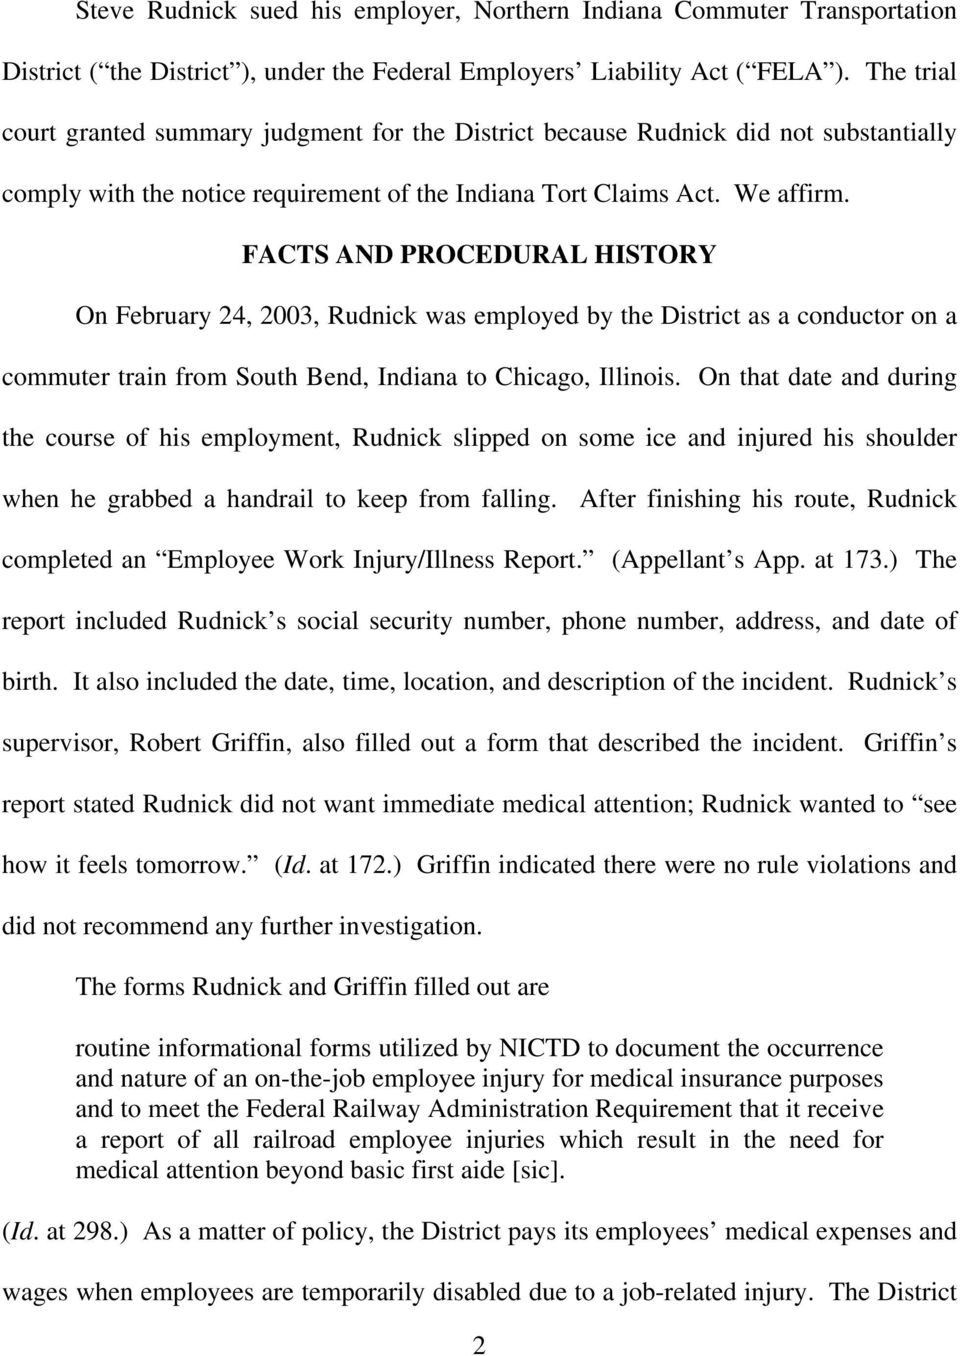 FACTS AND PROCEDURAL HISTORY On February 24, 2003, Rudnick was employed by the District as a conductor on a commuter train from South Bend, Indiana to Chicago, Illinois.